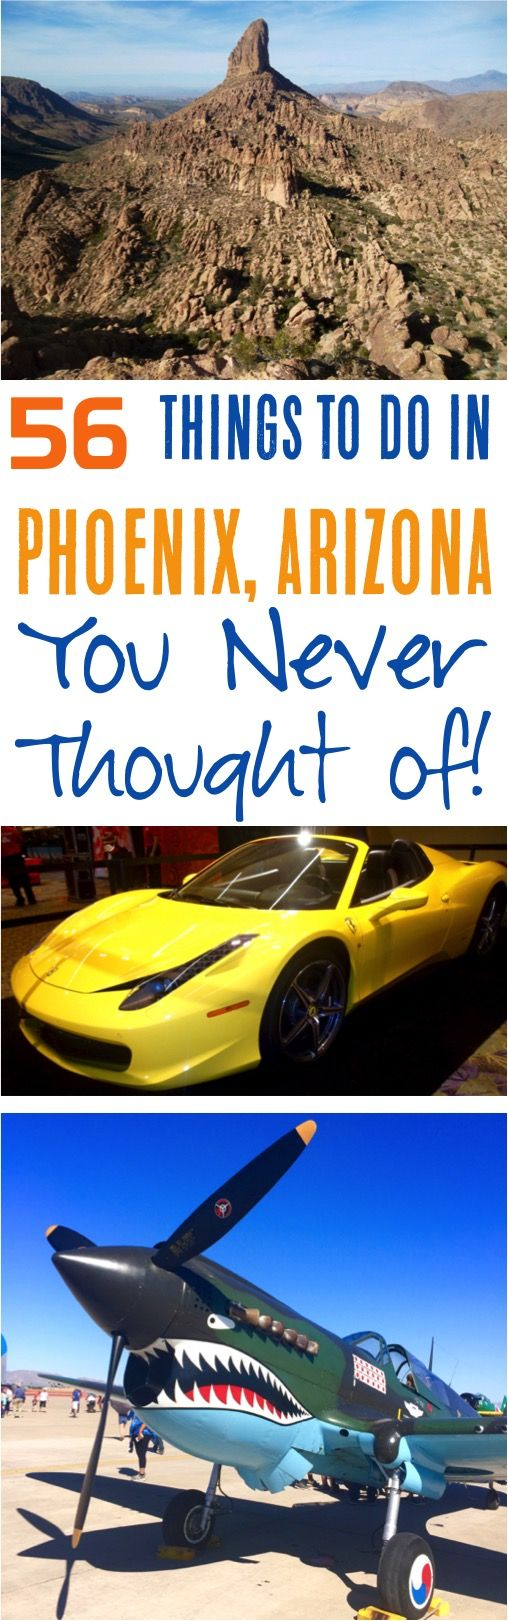 Phoenix arizona travel guide your travel bucket list of things to do in phoenix including